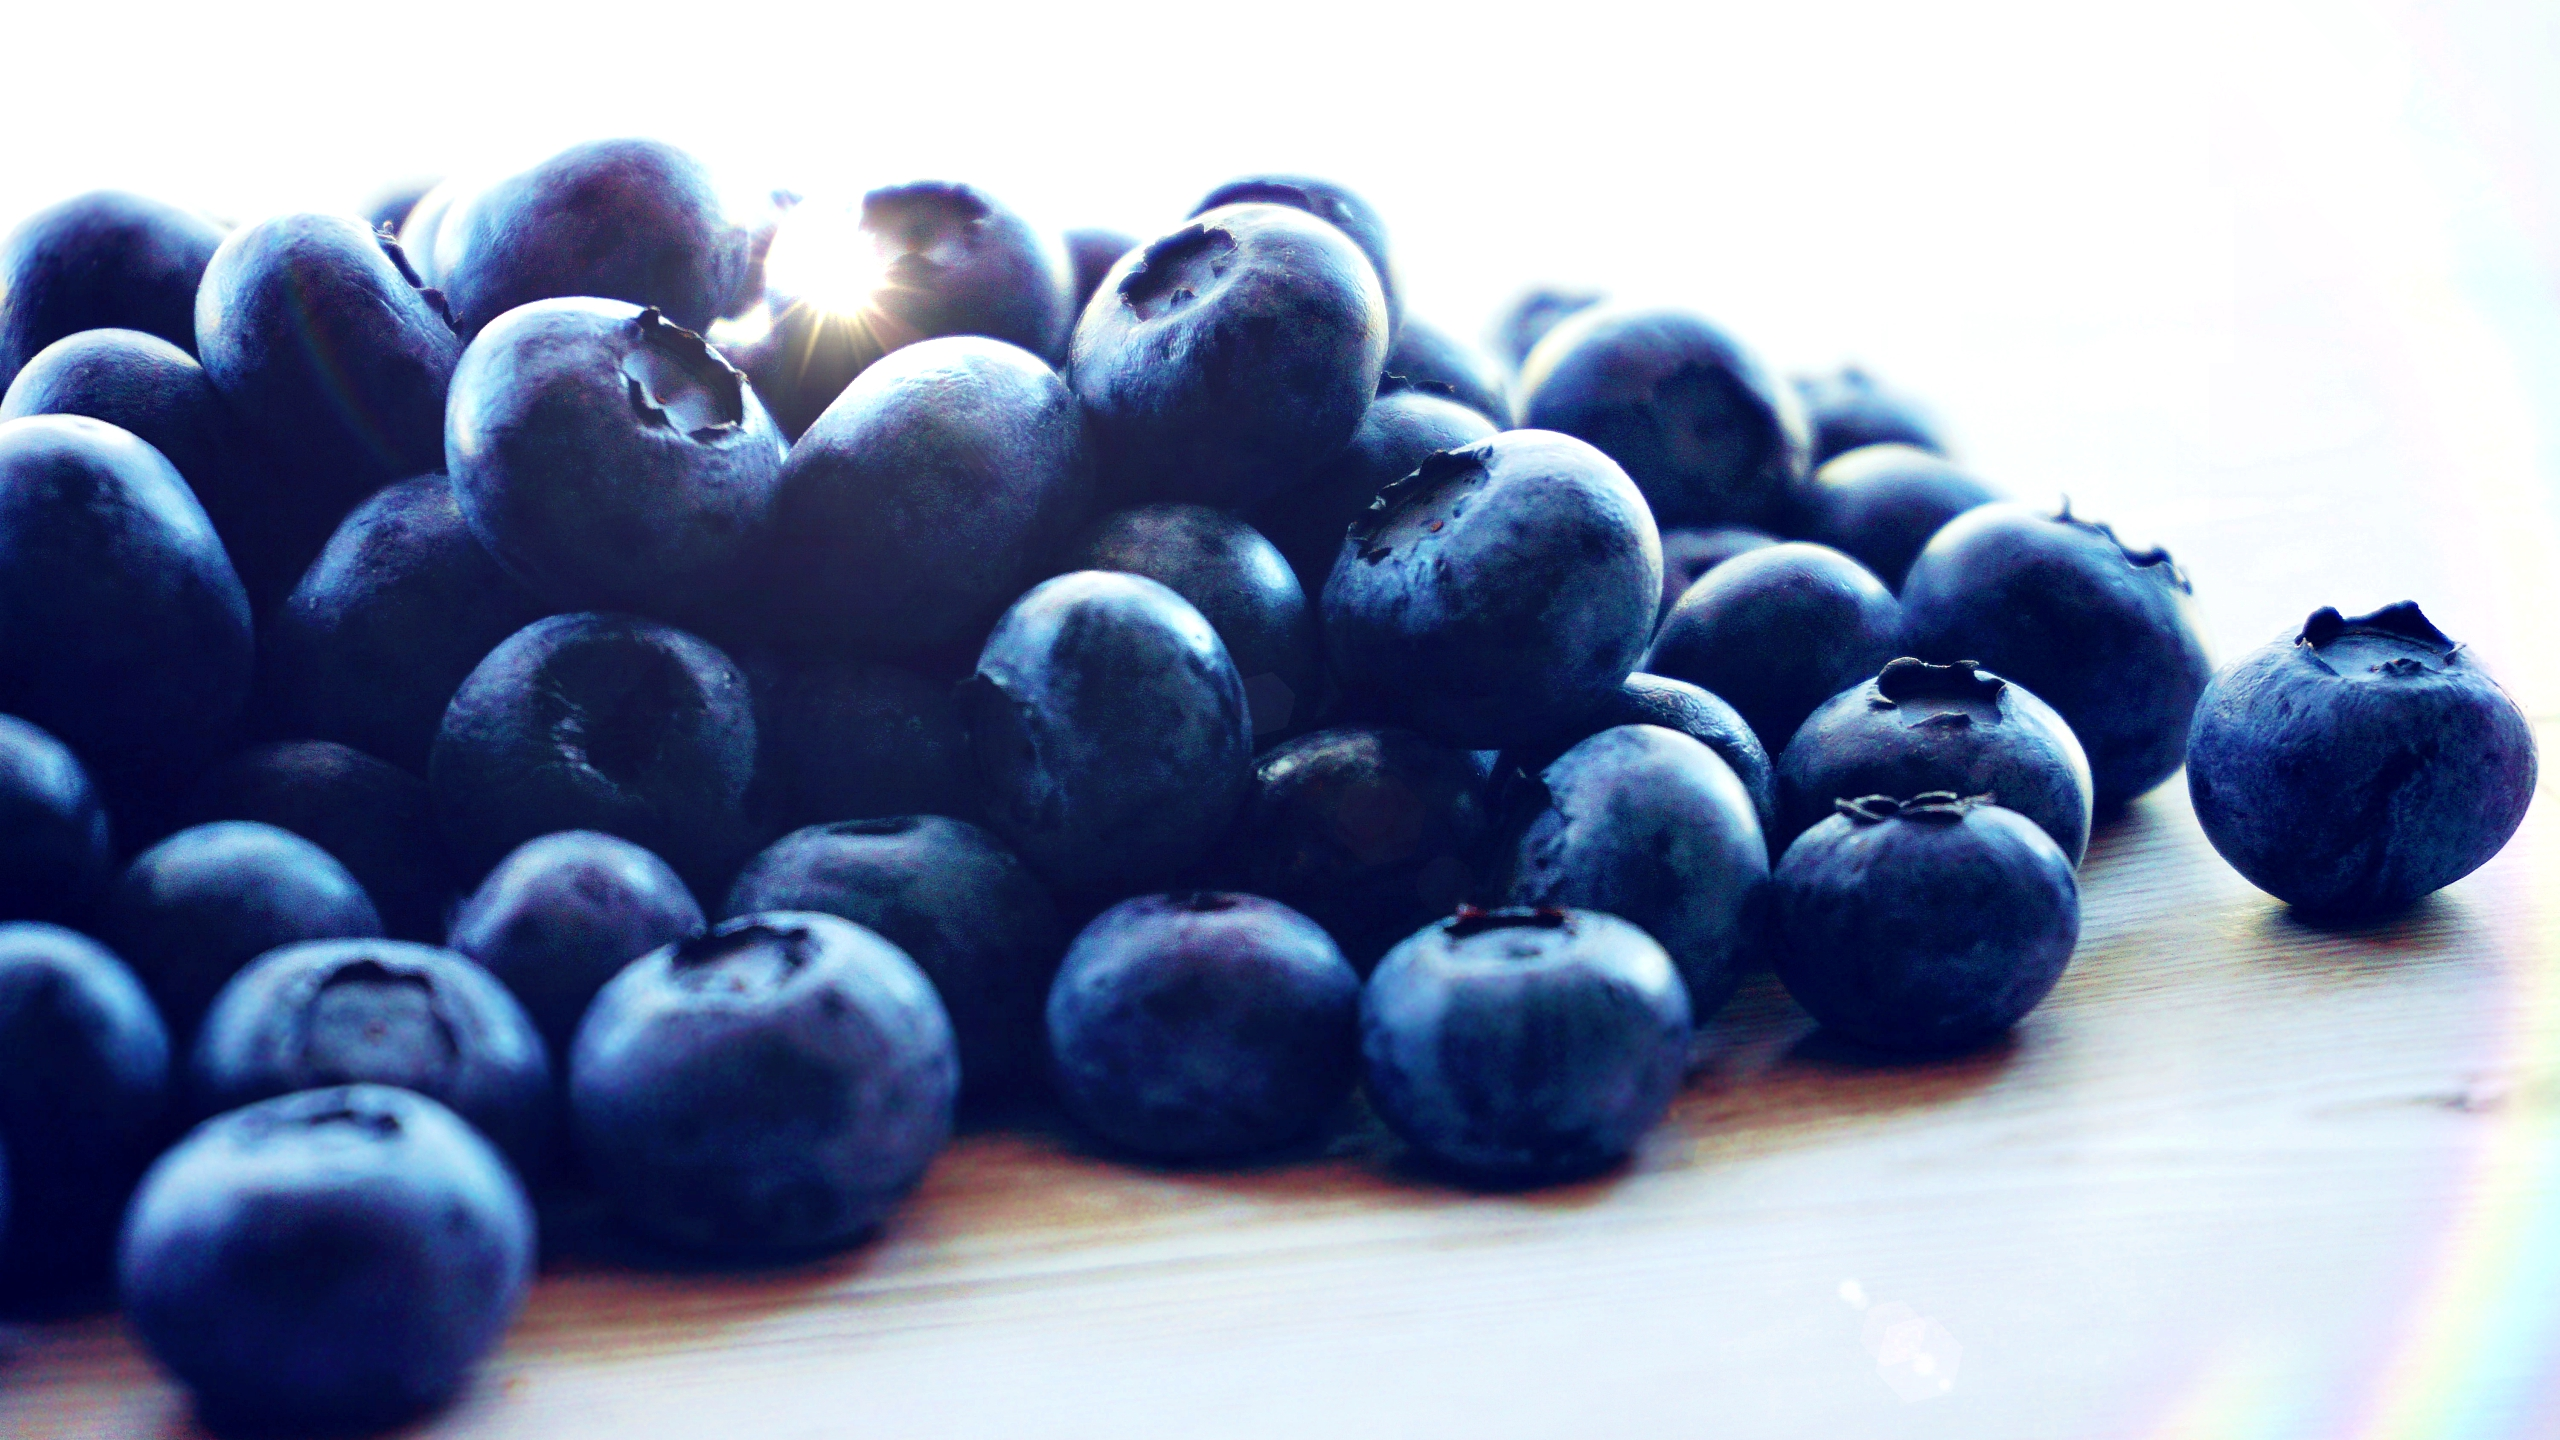 Blueberries - Up Close